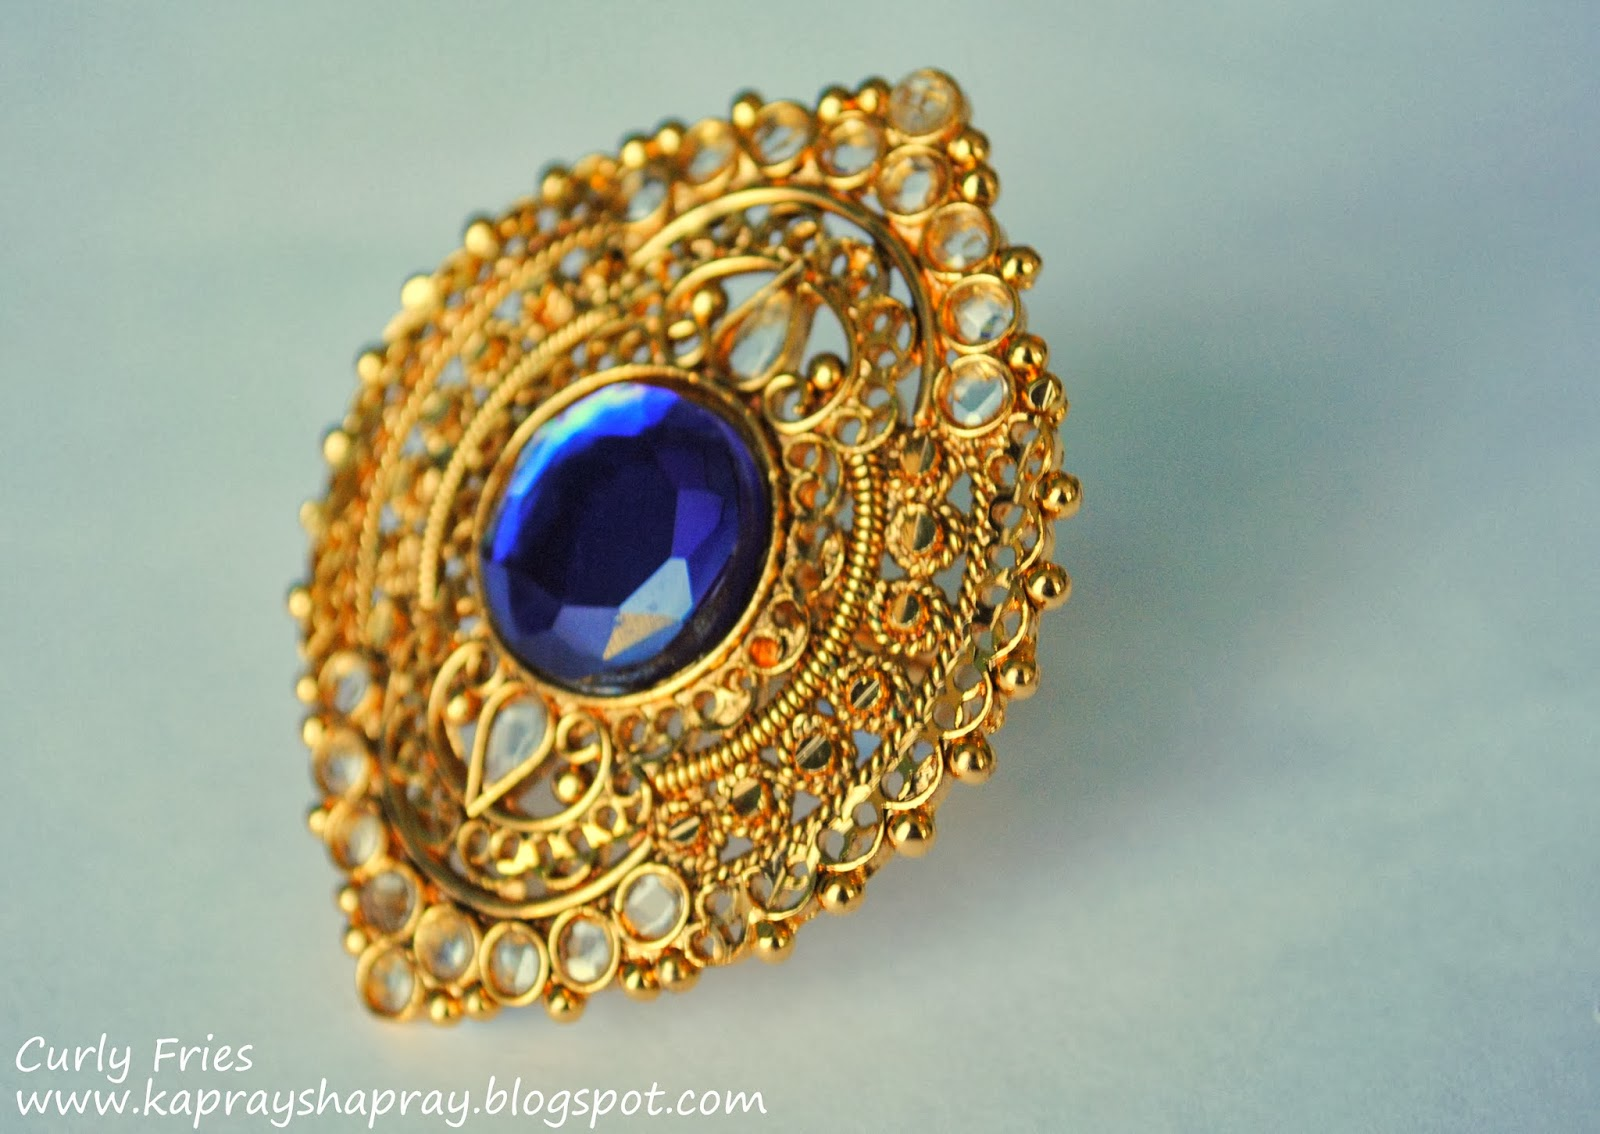 Curly Fries GLAMOROUS ACCESSORIES A Delicate Gold Amp Royal Blue Ring